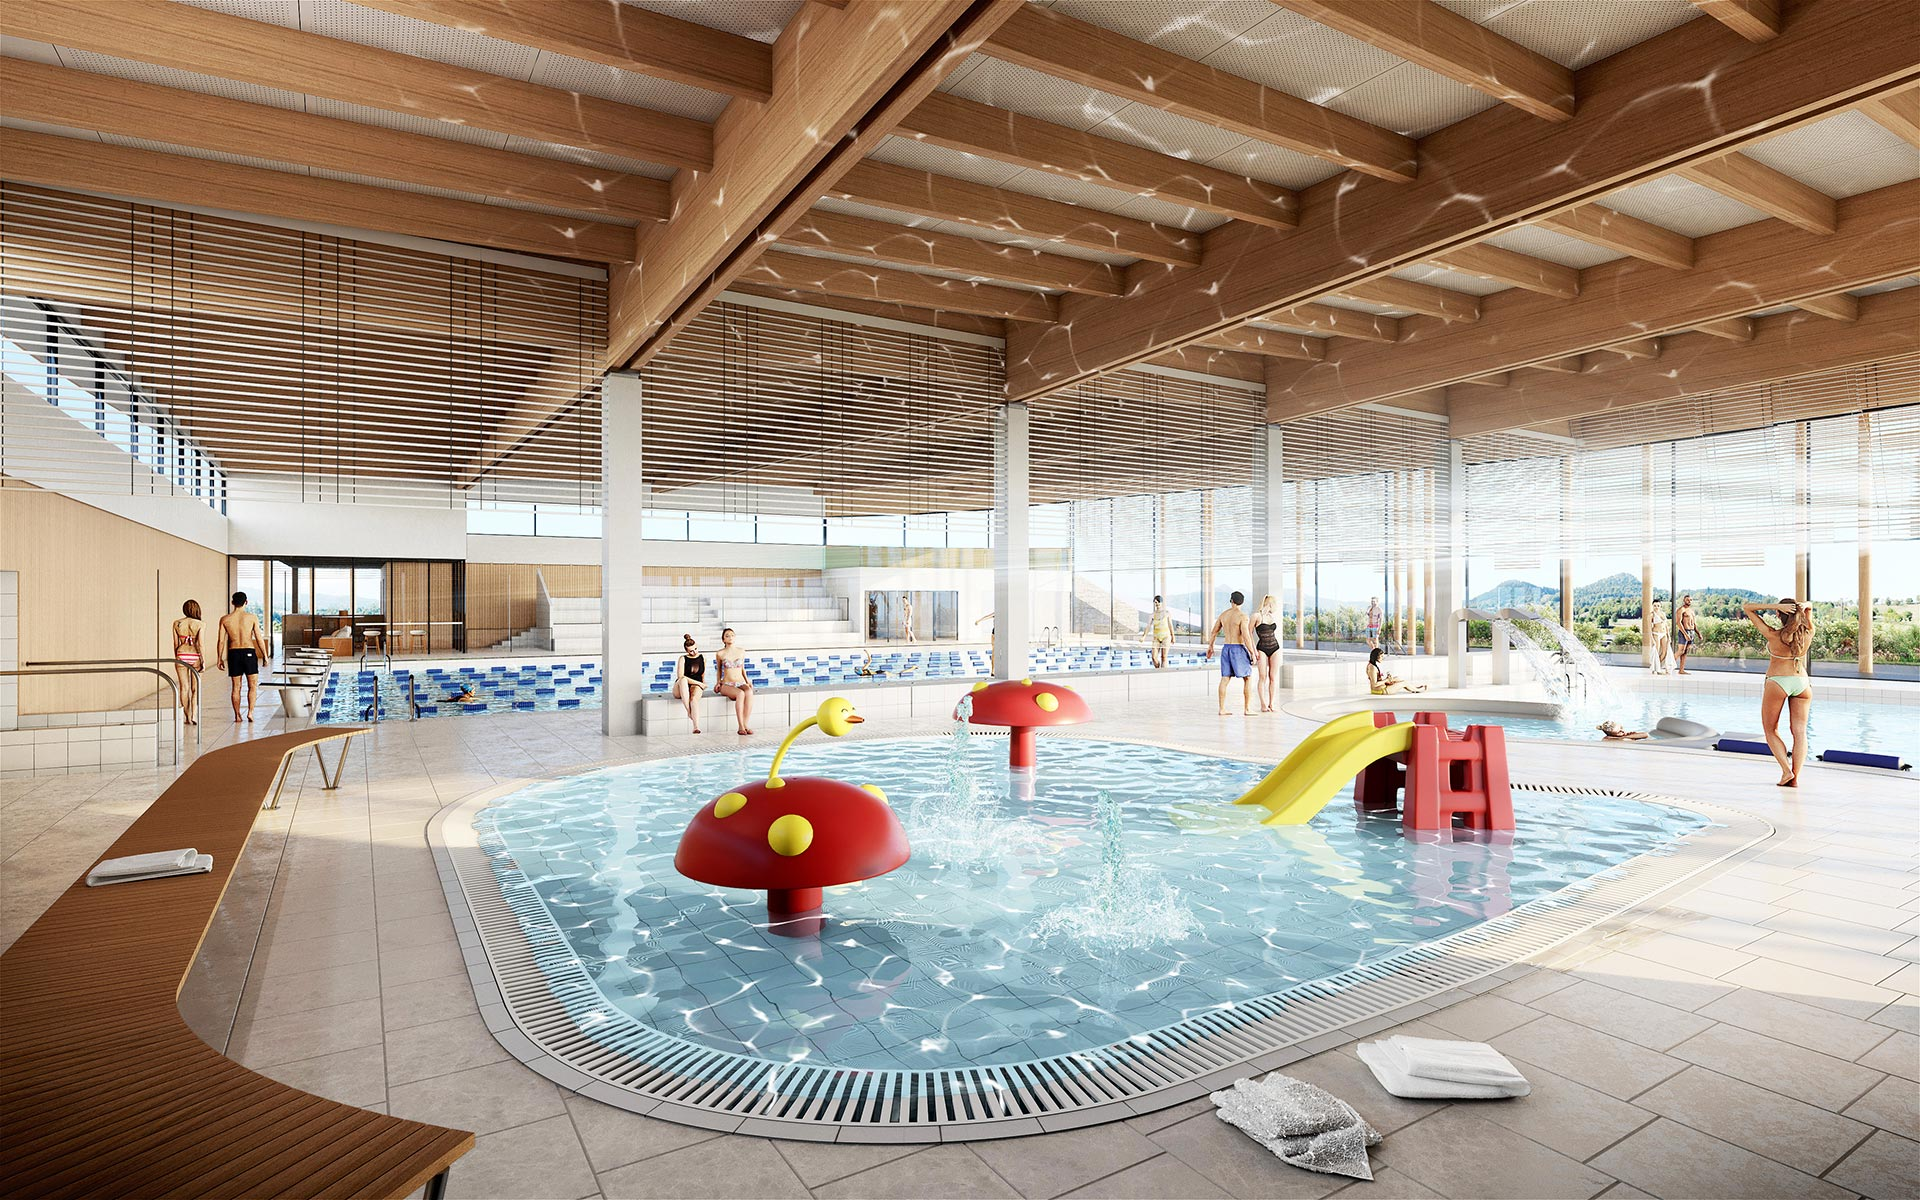 3D interior visualization of a pool